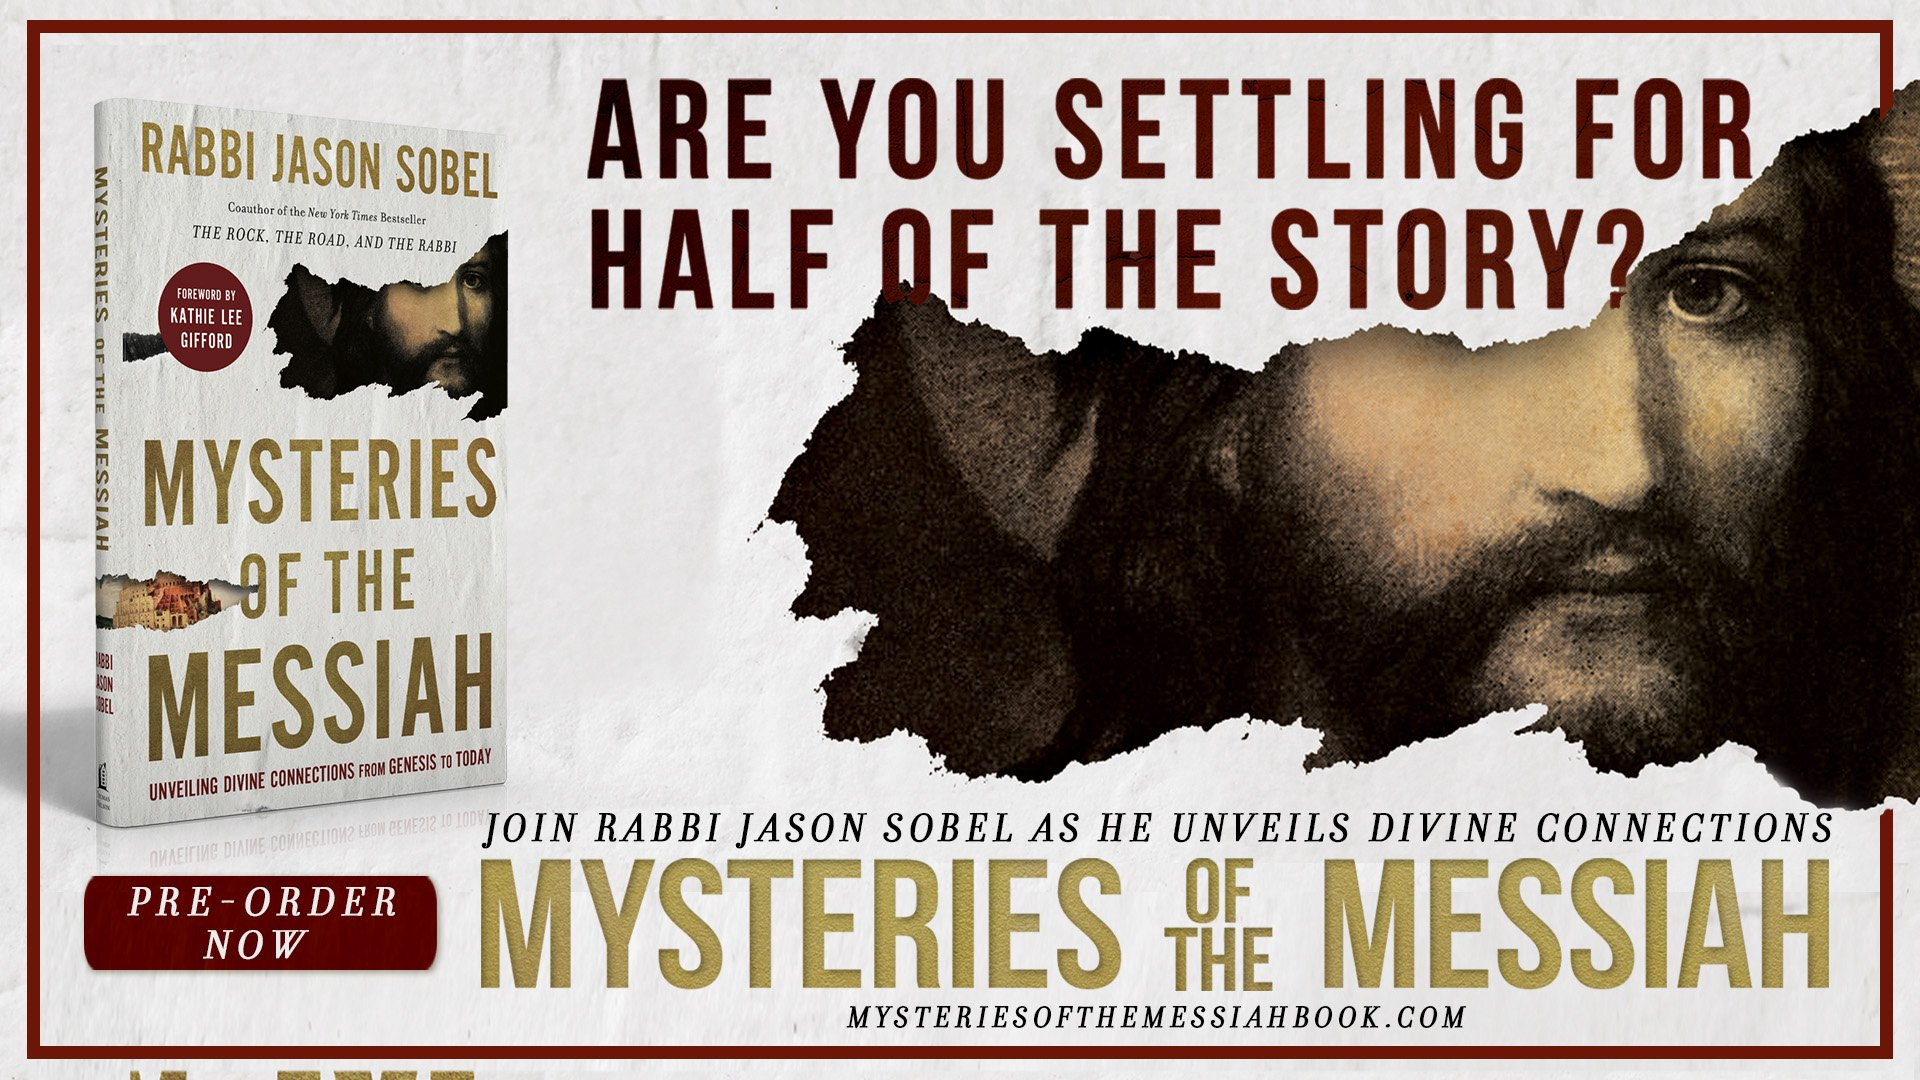 Mysteries of the Messiah Preorder